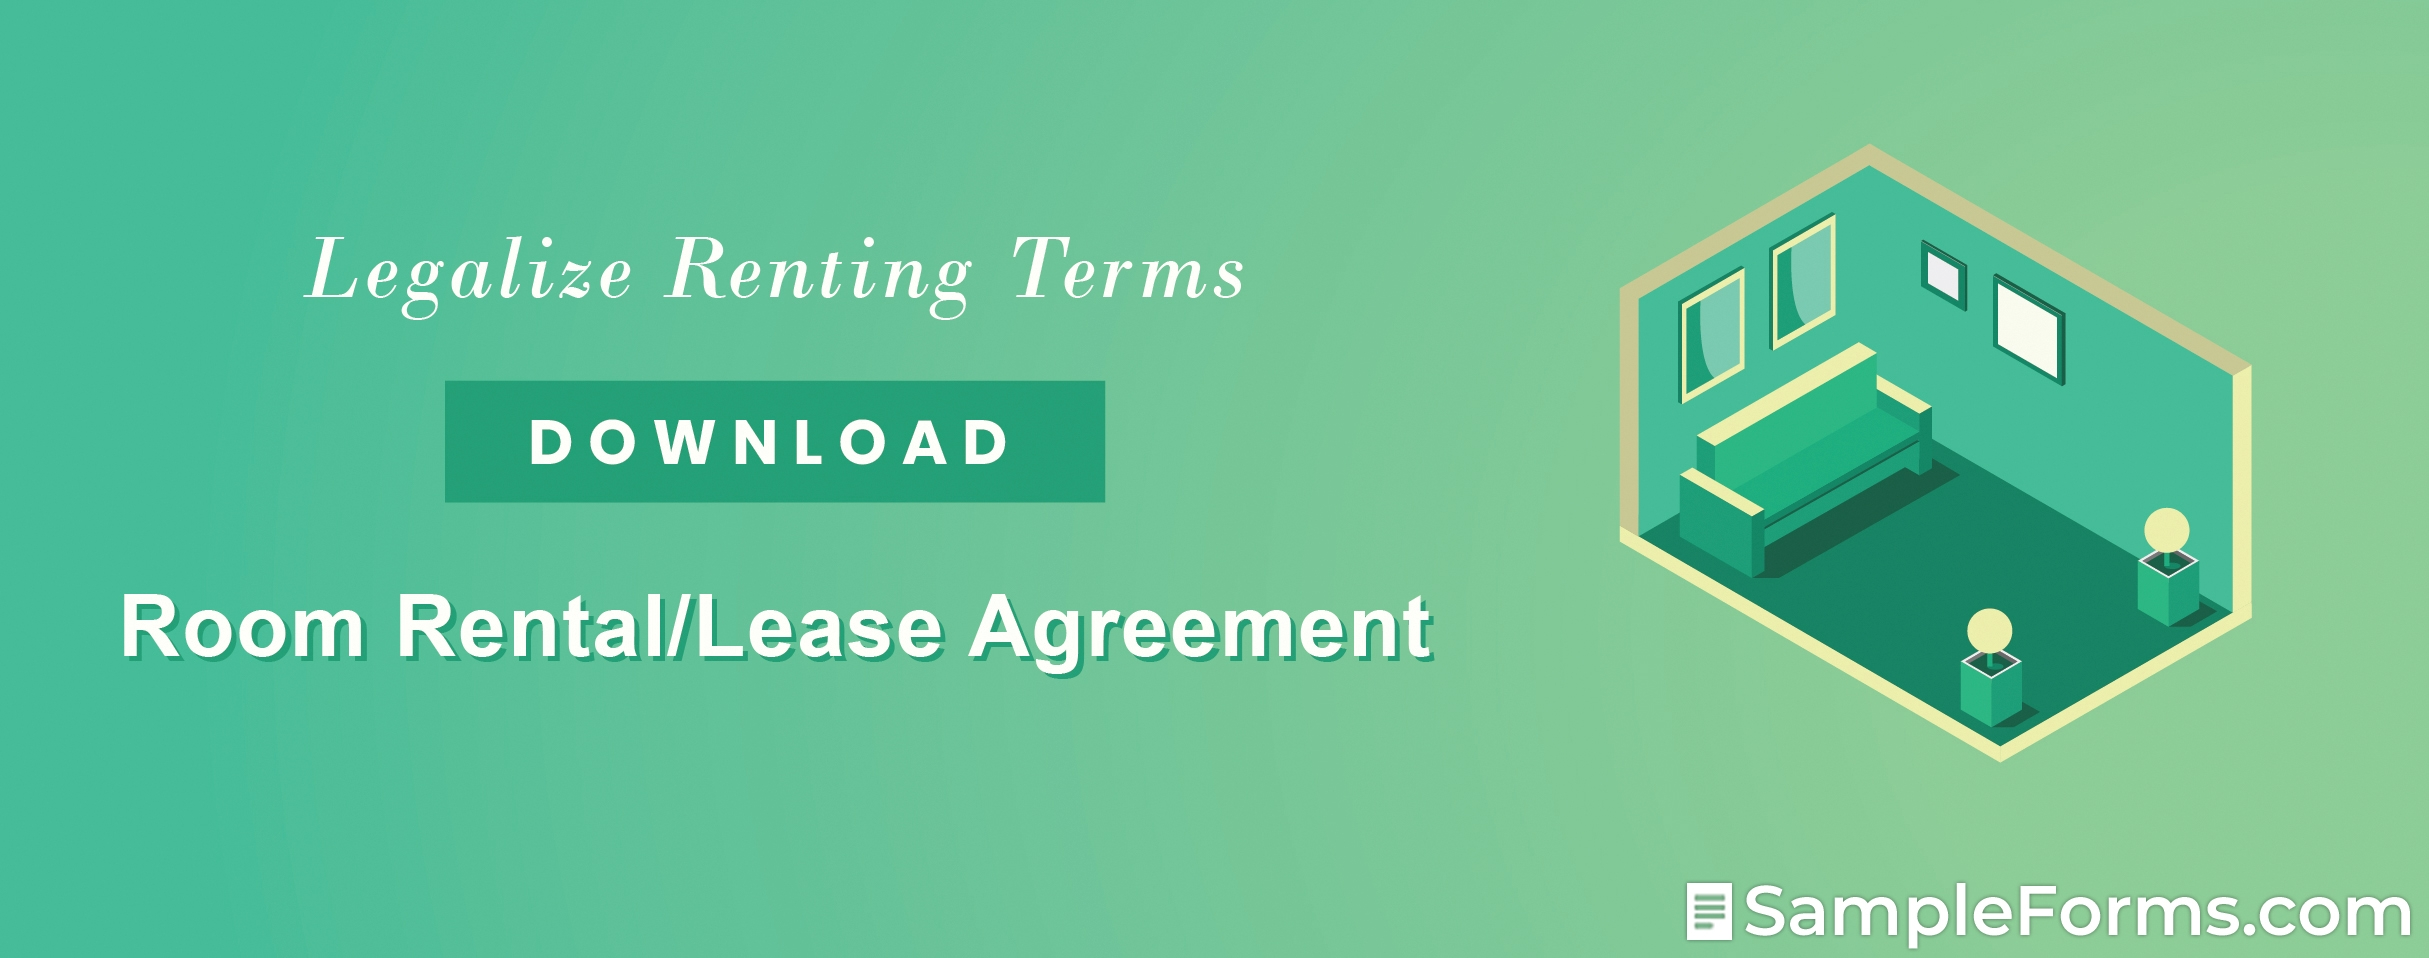 Room RentalLease Agreement